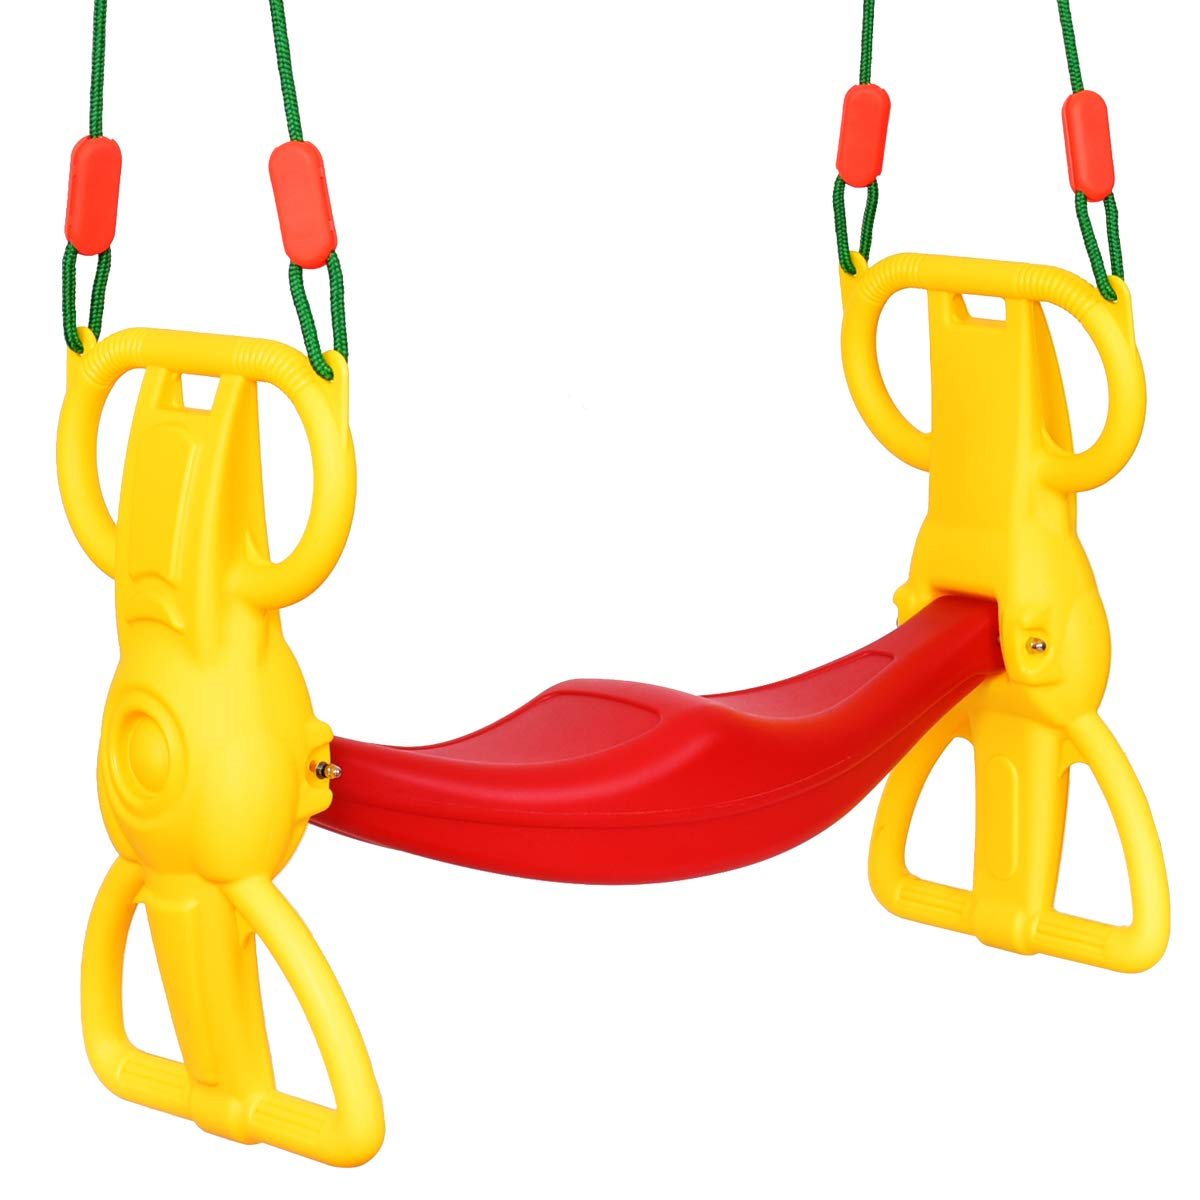 Costzon Rider Swing with Hangers, Wind Rider Glider Swing for Kids Playground (Back to Back Rider Swing for 2 Kids)